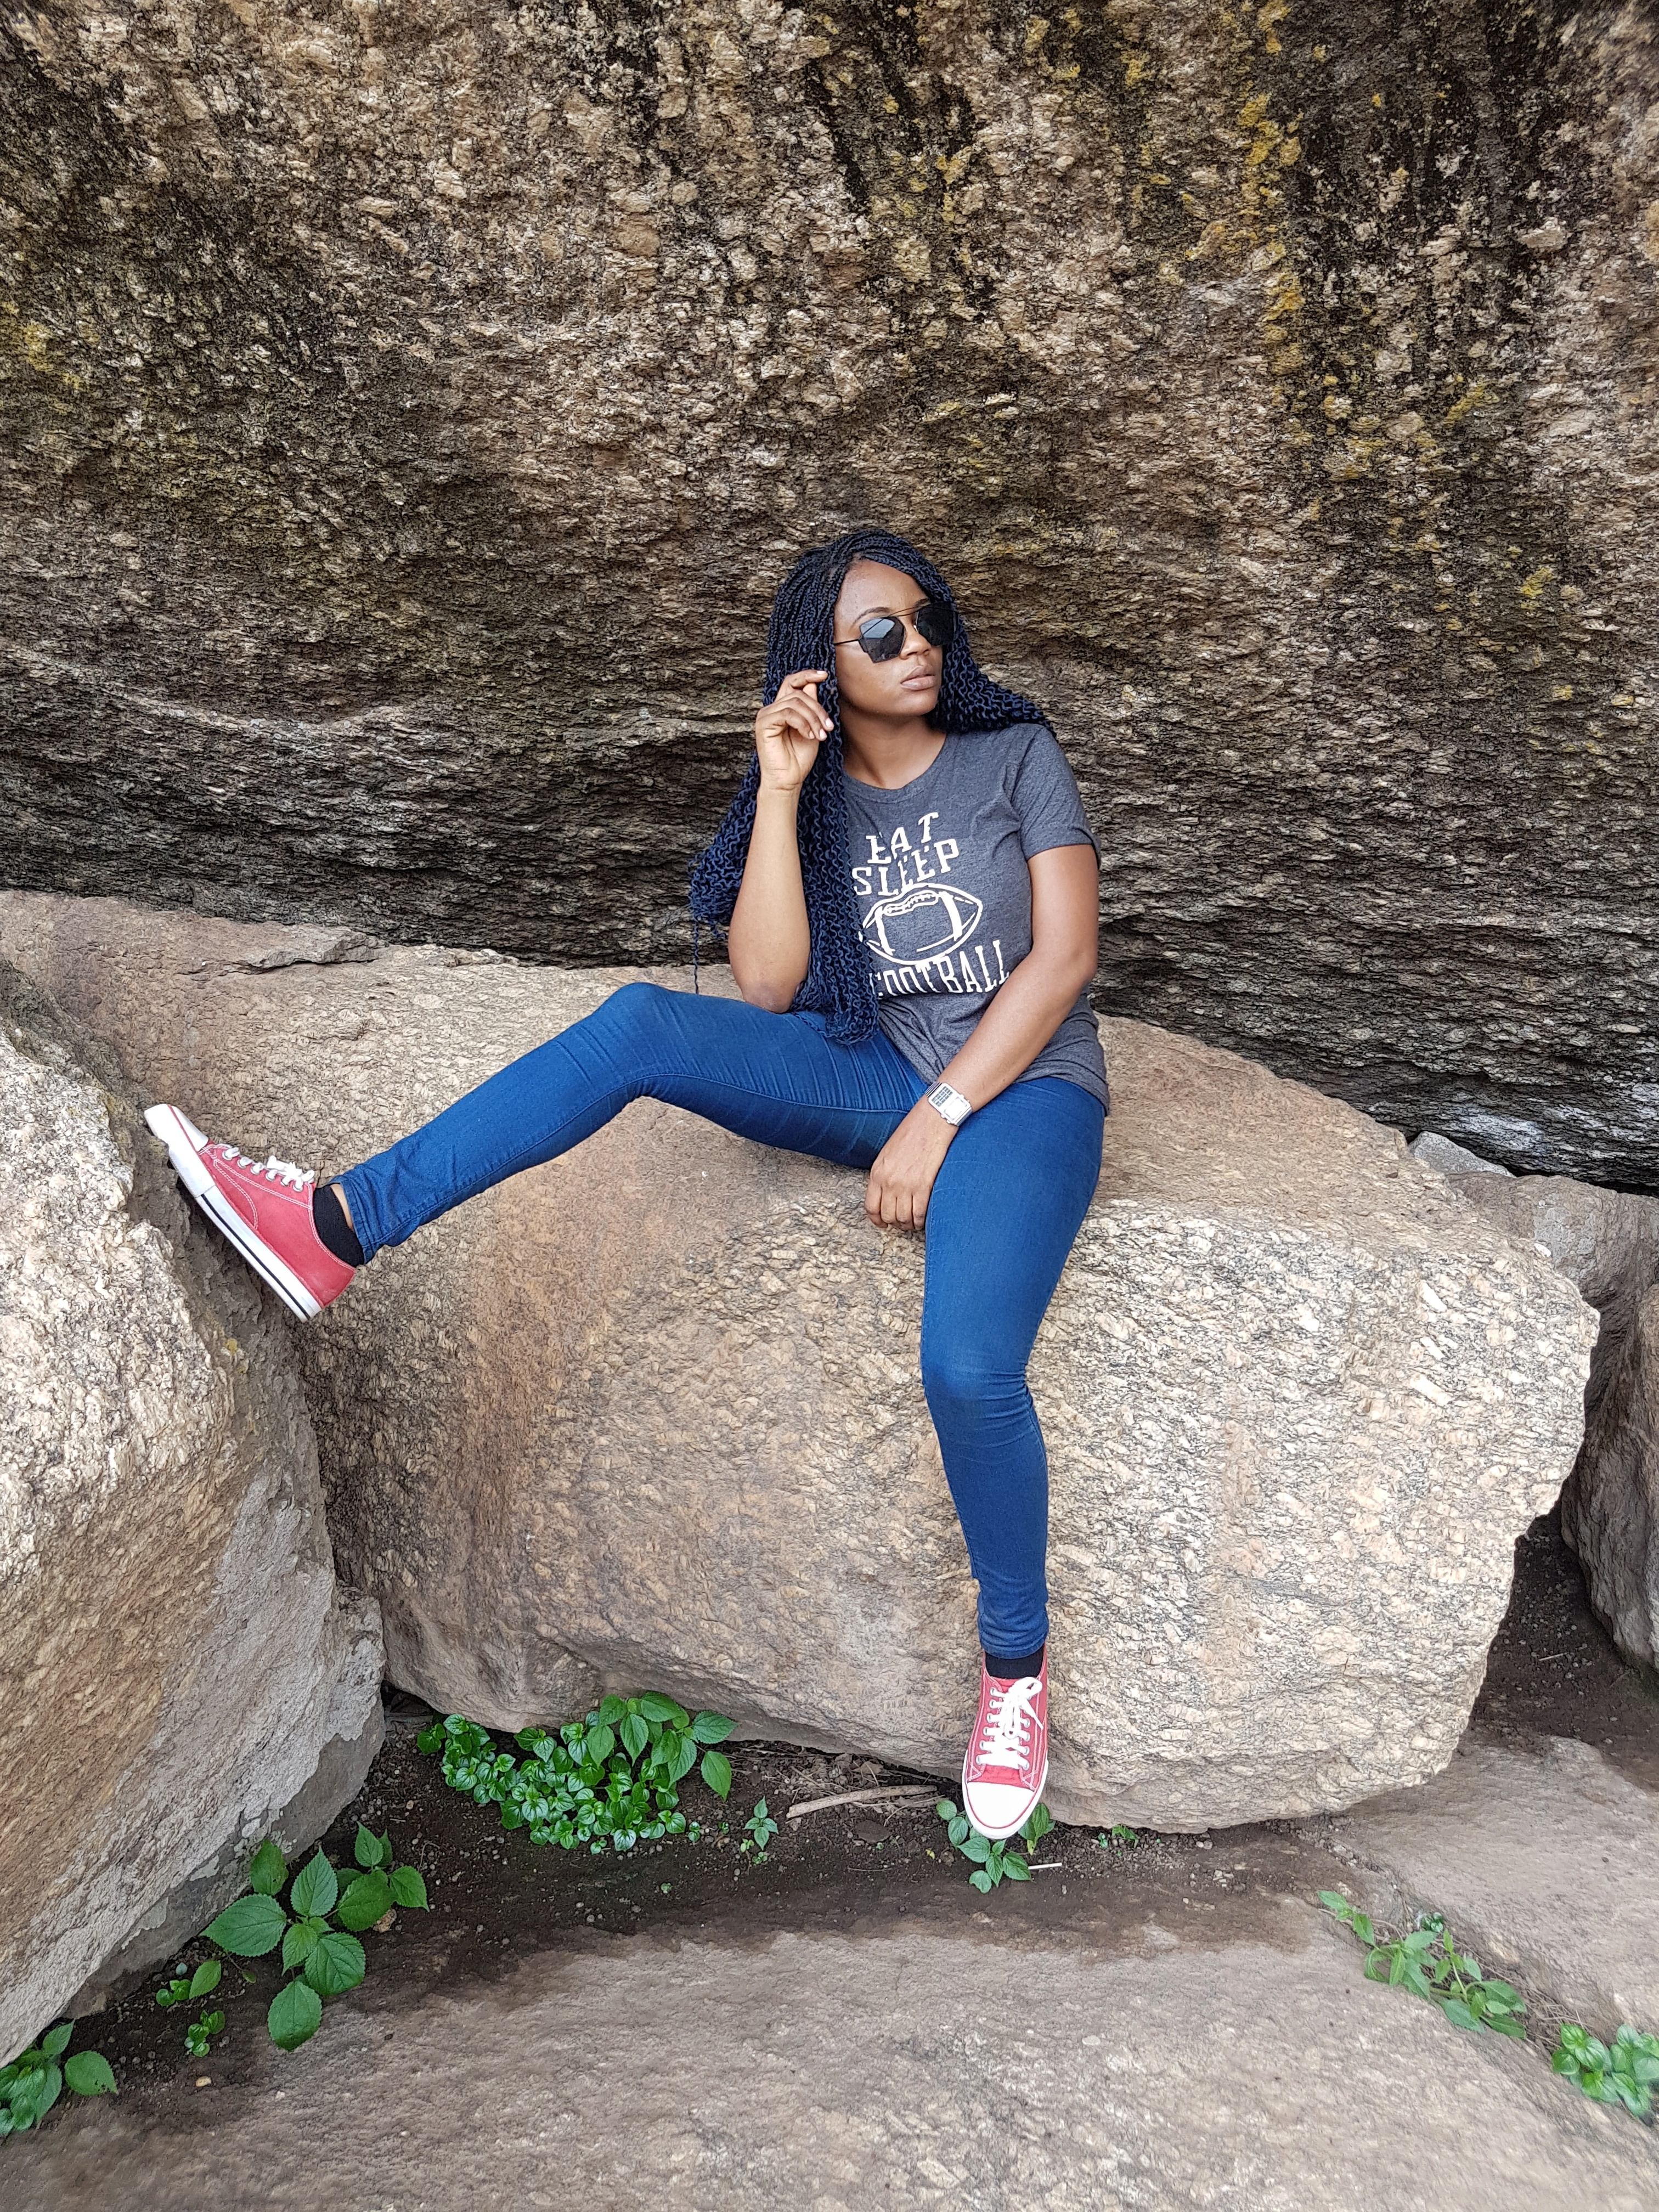 Olumo Rock (Abeokuta) – Road Trip With The Girls